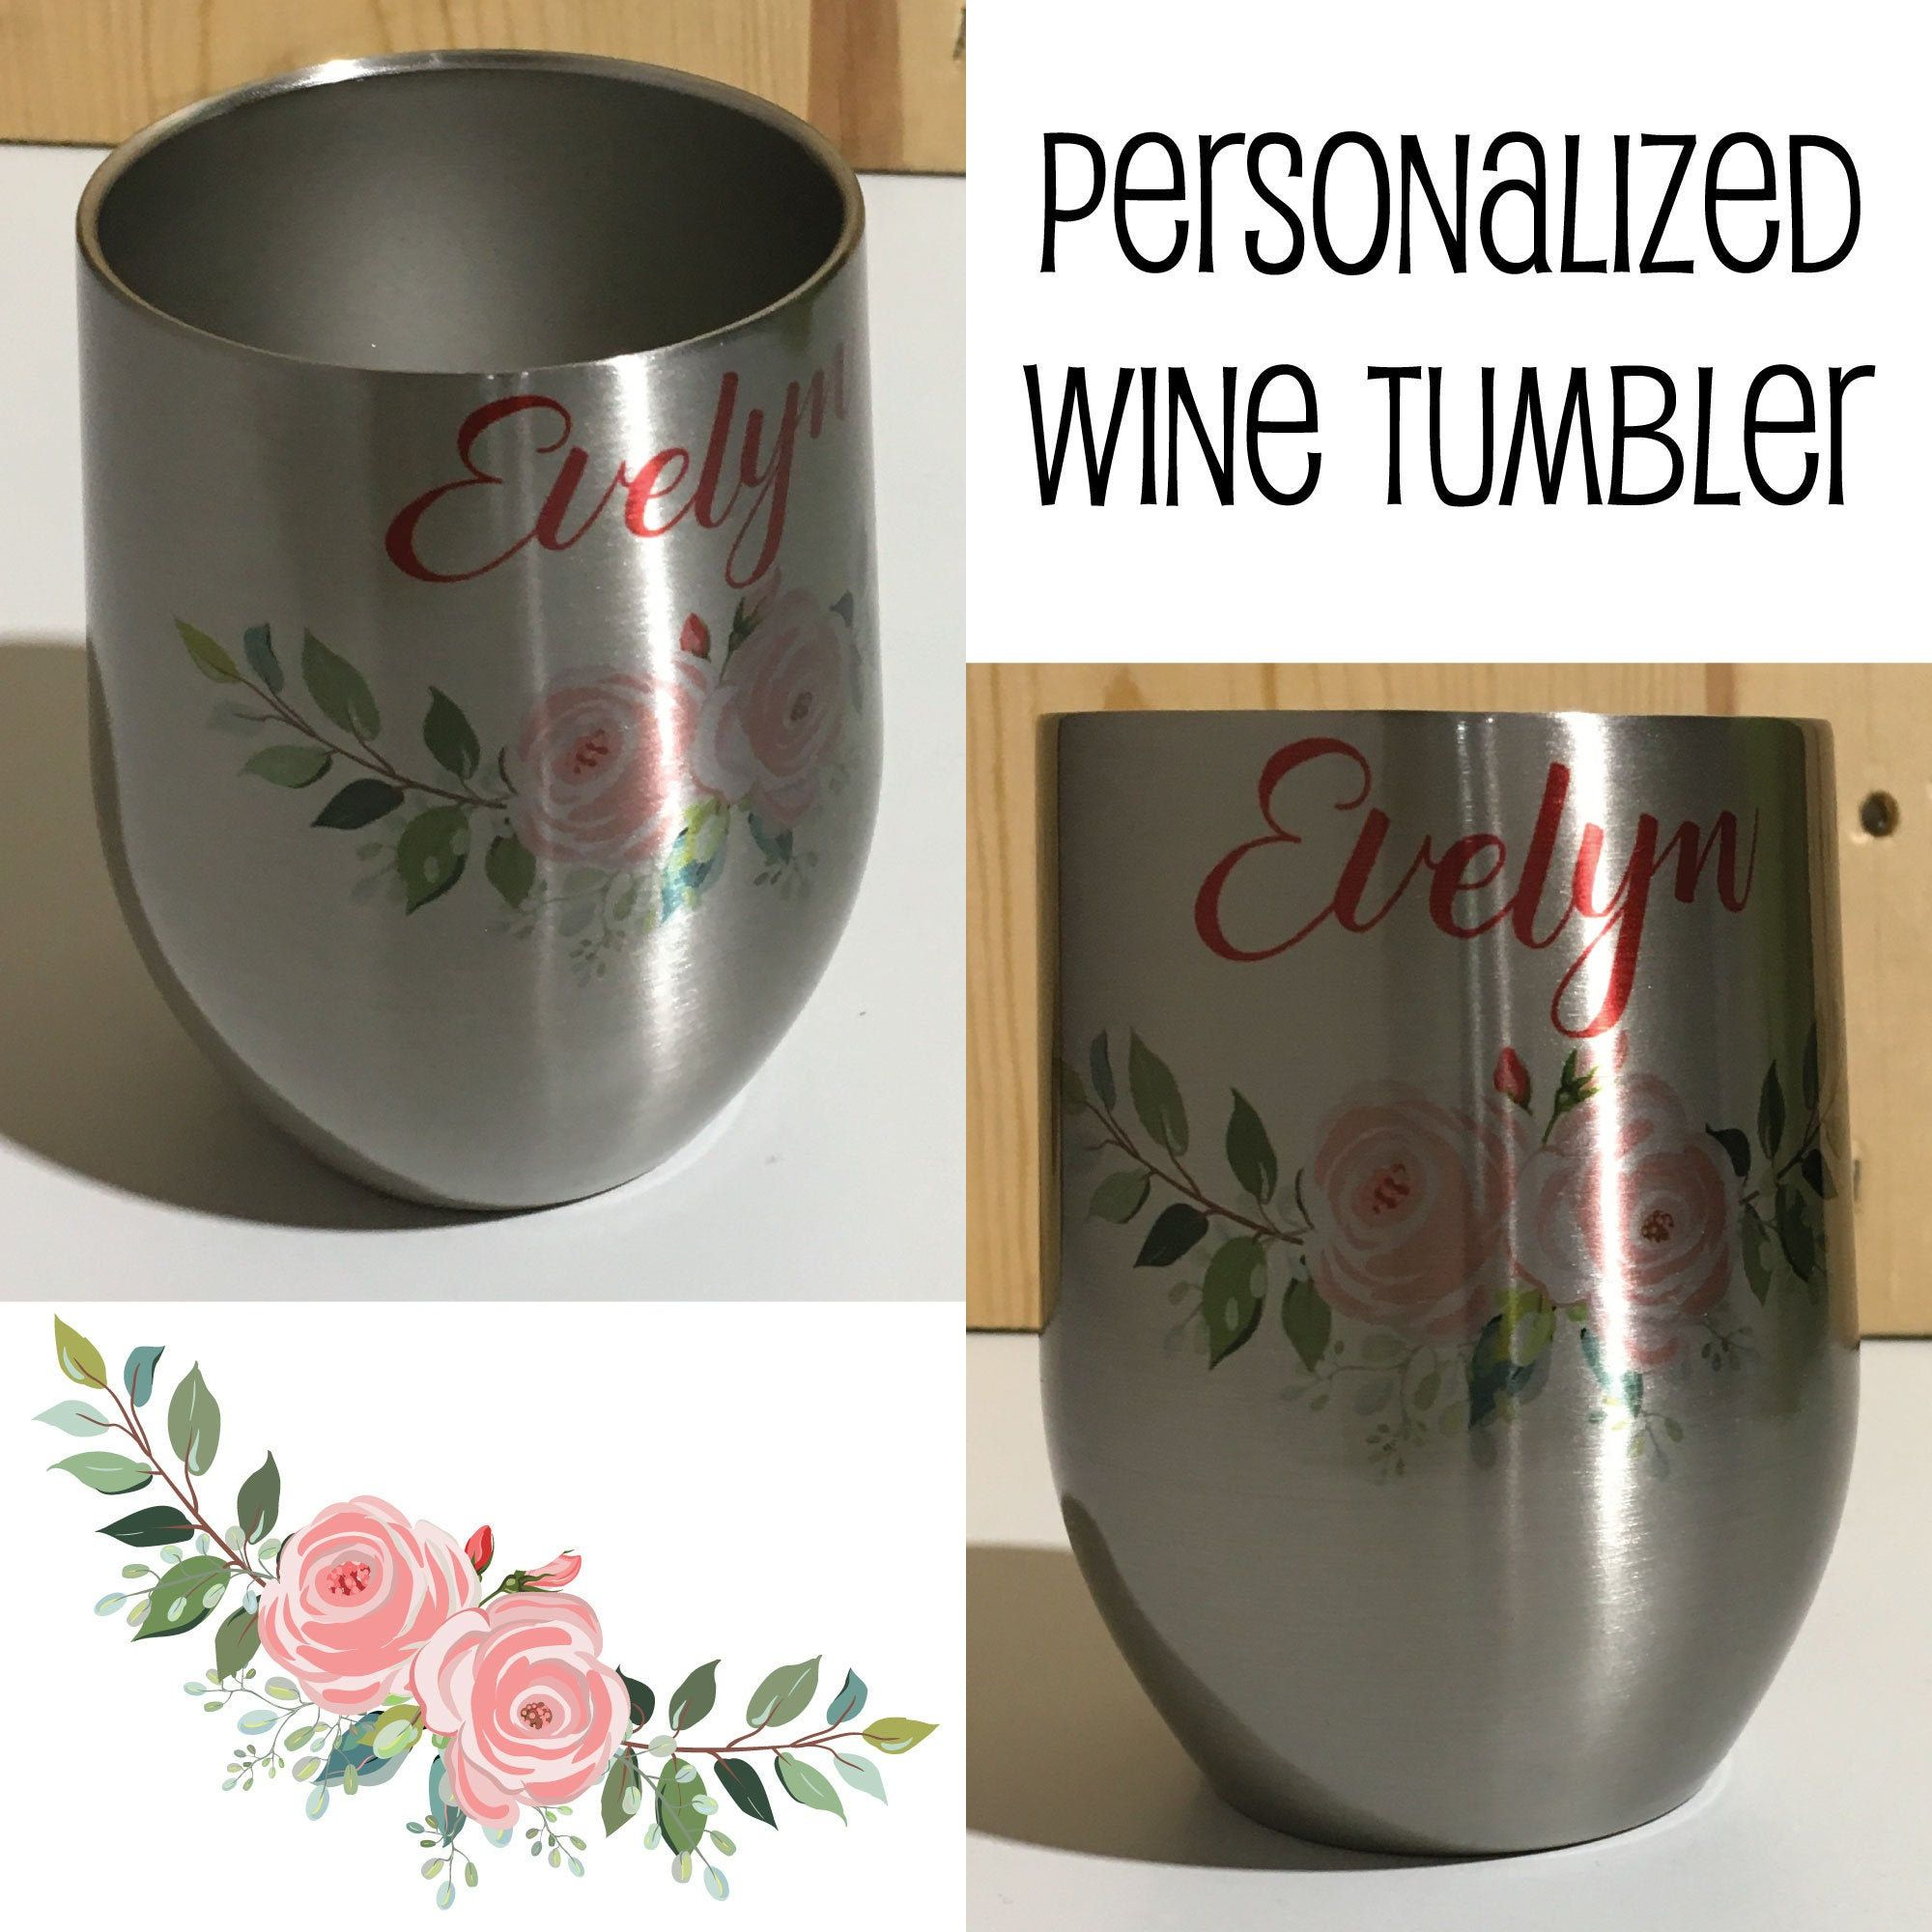 Personalized Sublimation Stainless Steel 12oz Wine Tumbler